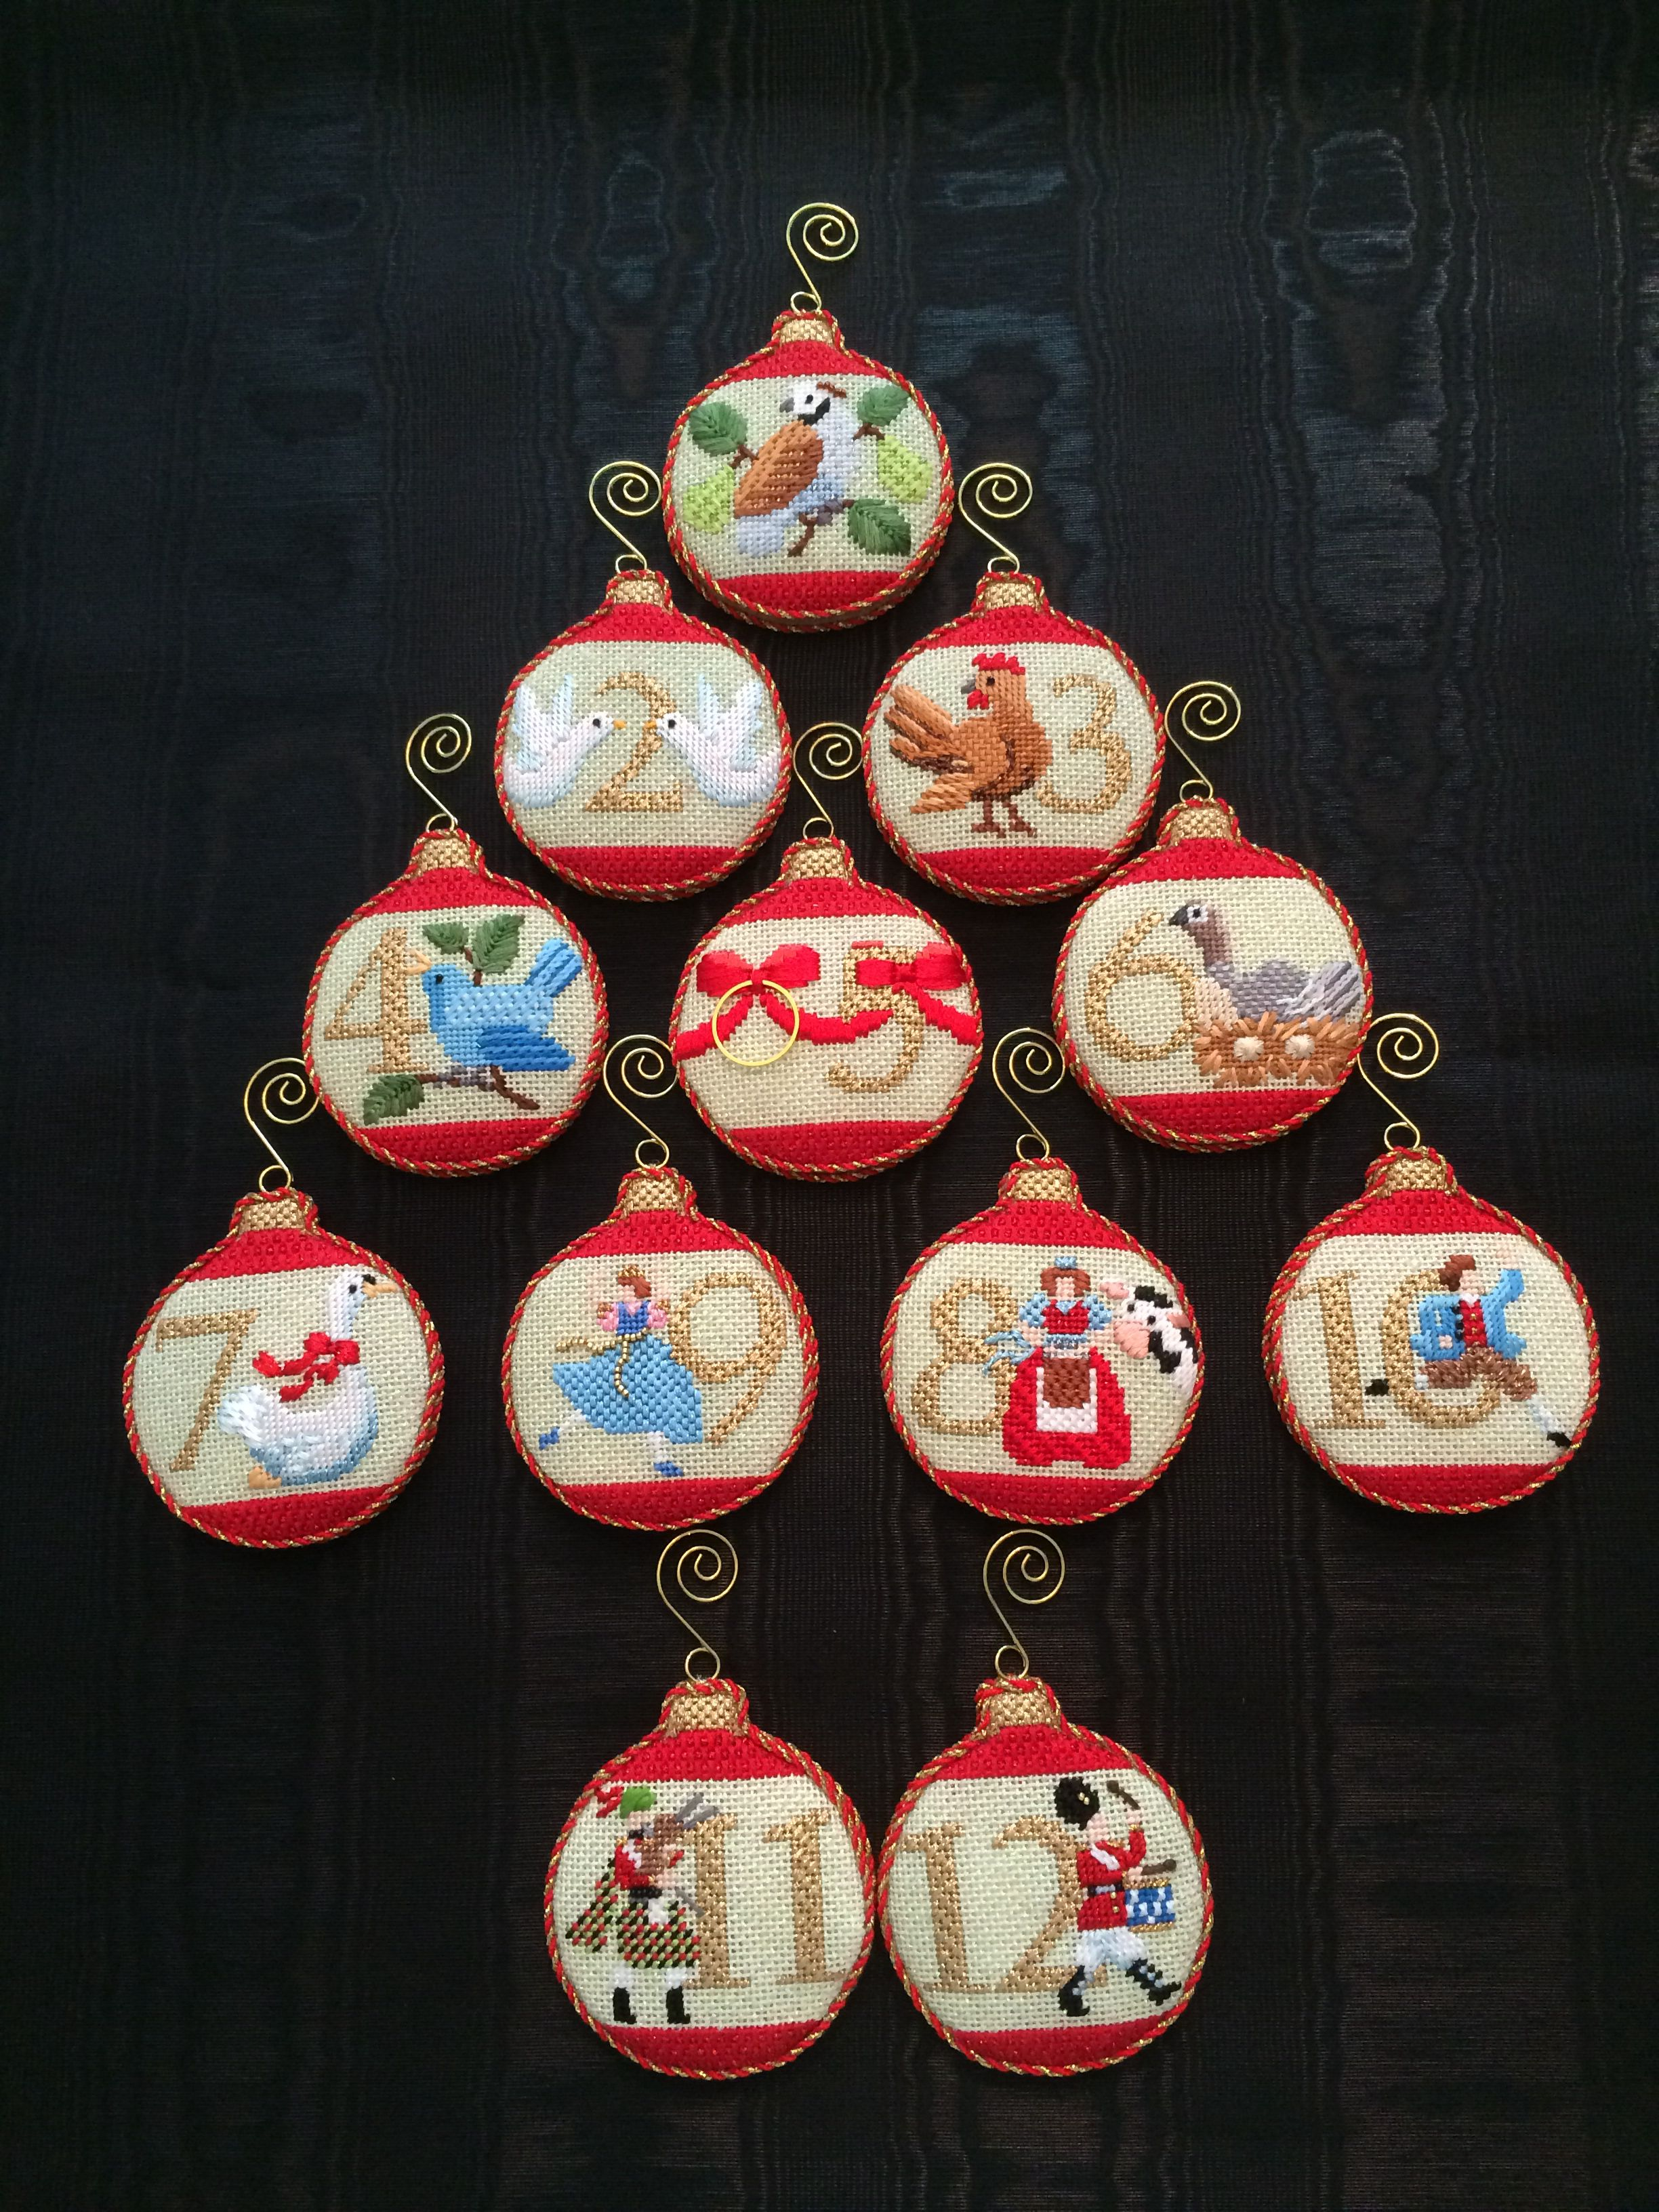 12 Days Of Christmas Ornaments Canvas By Kirk Bradley Cross Stitch Christmas Ornaments 12 Days Of Xmas Needlepoint Ornaments